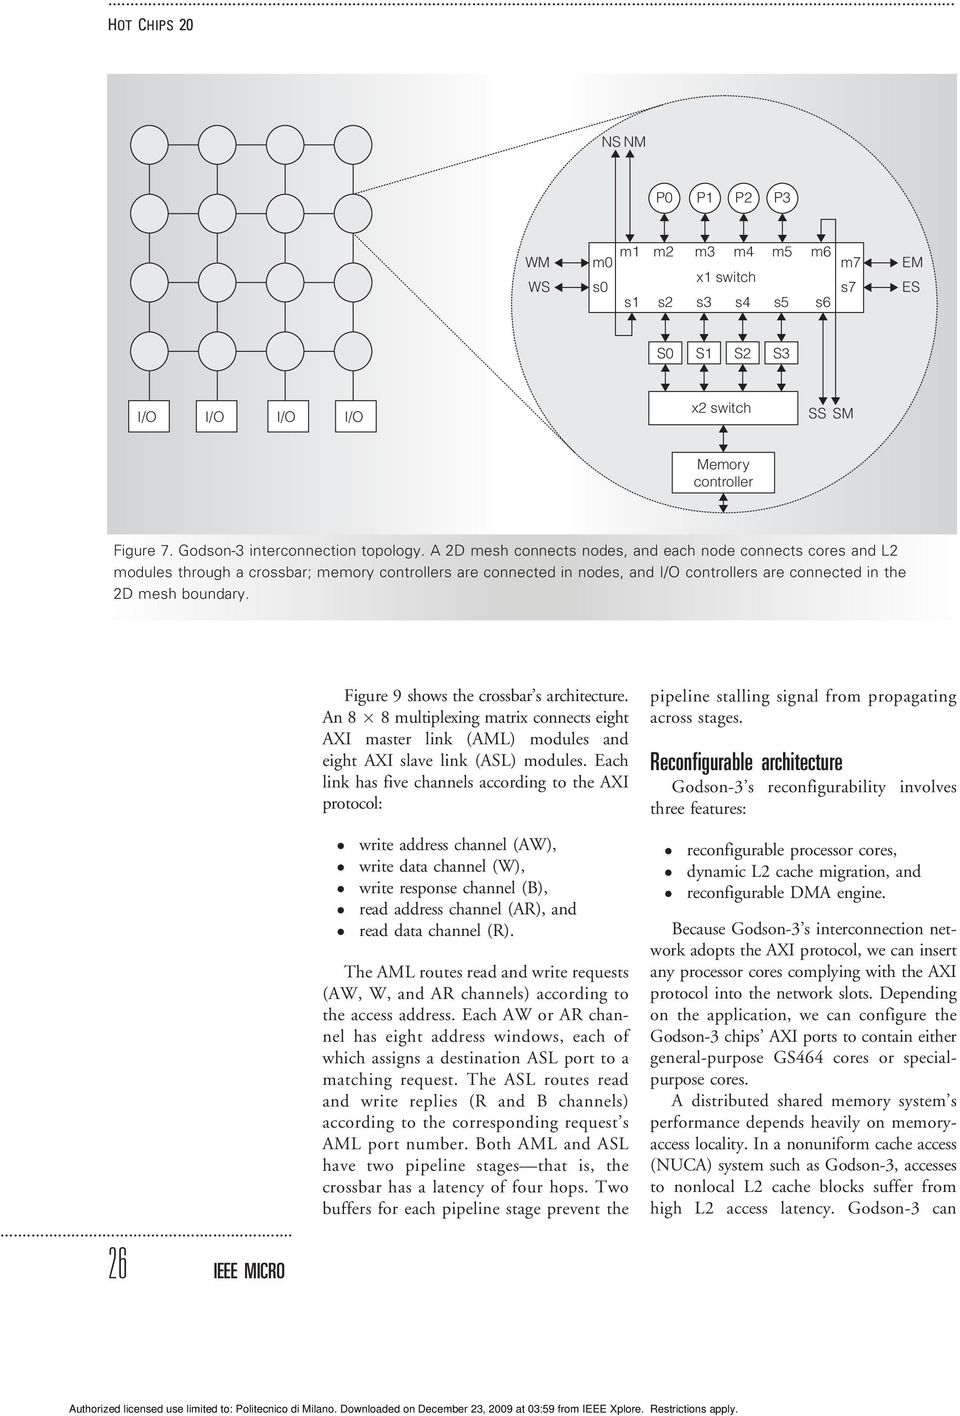 26 IEEE MICRO Figure 9 shows the crossbar s architecture An 8 8 multiplexing matrix connects eight AXI master link (AML) modules and eight AXI slave link (ASL) modules Each link has five channels